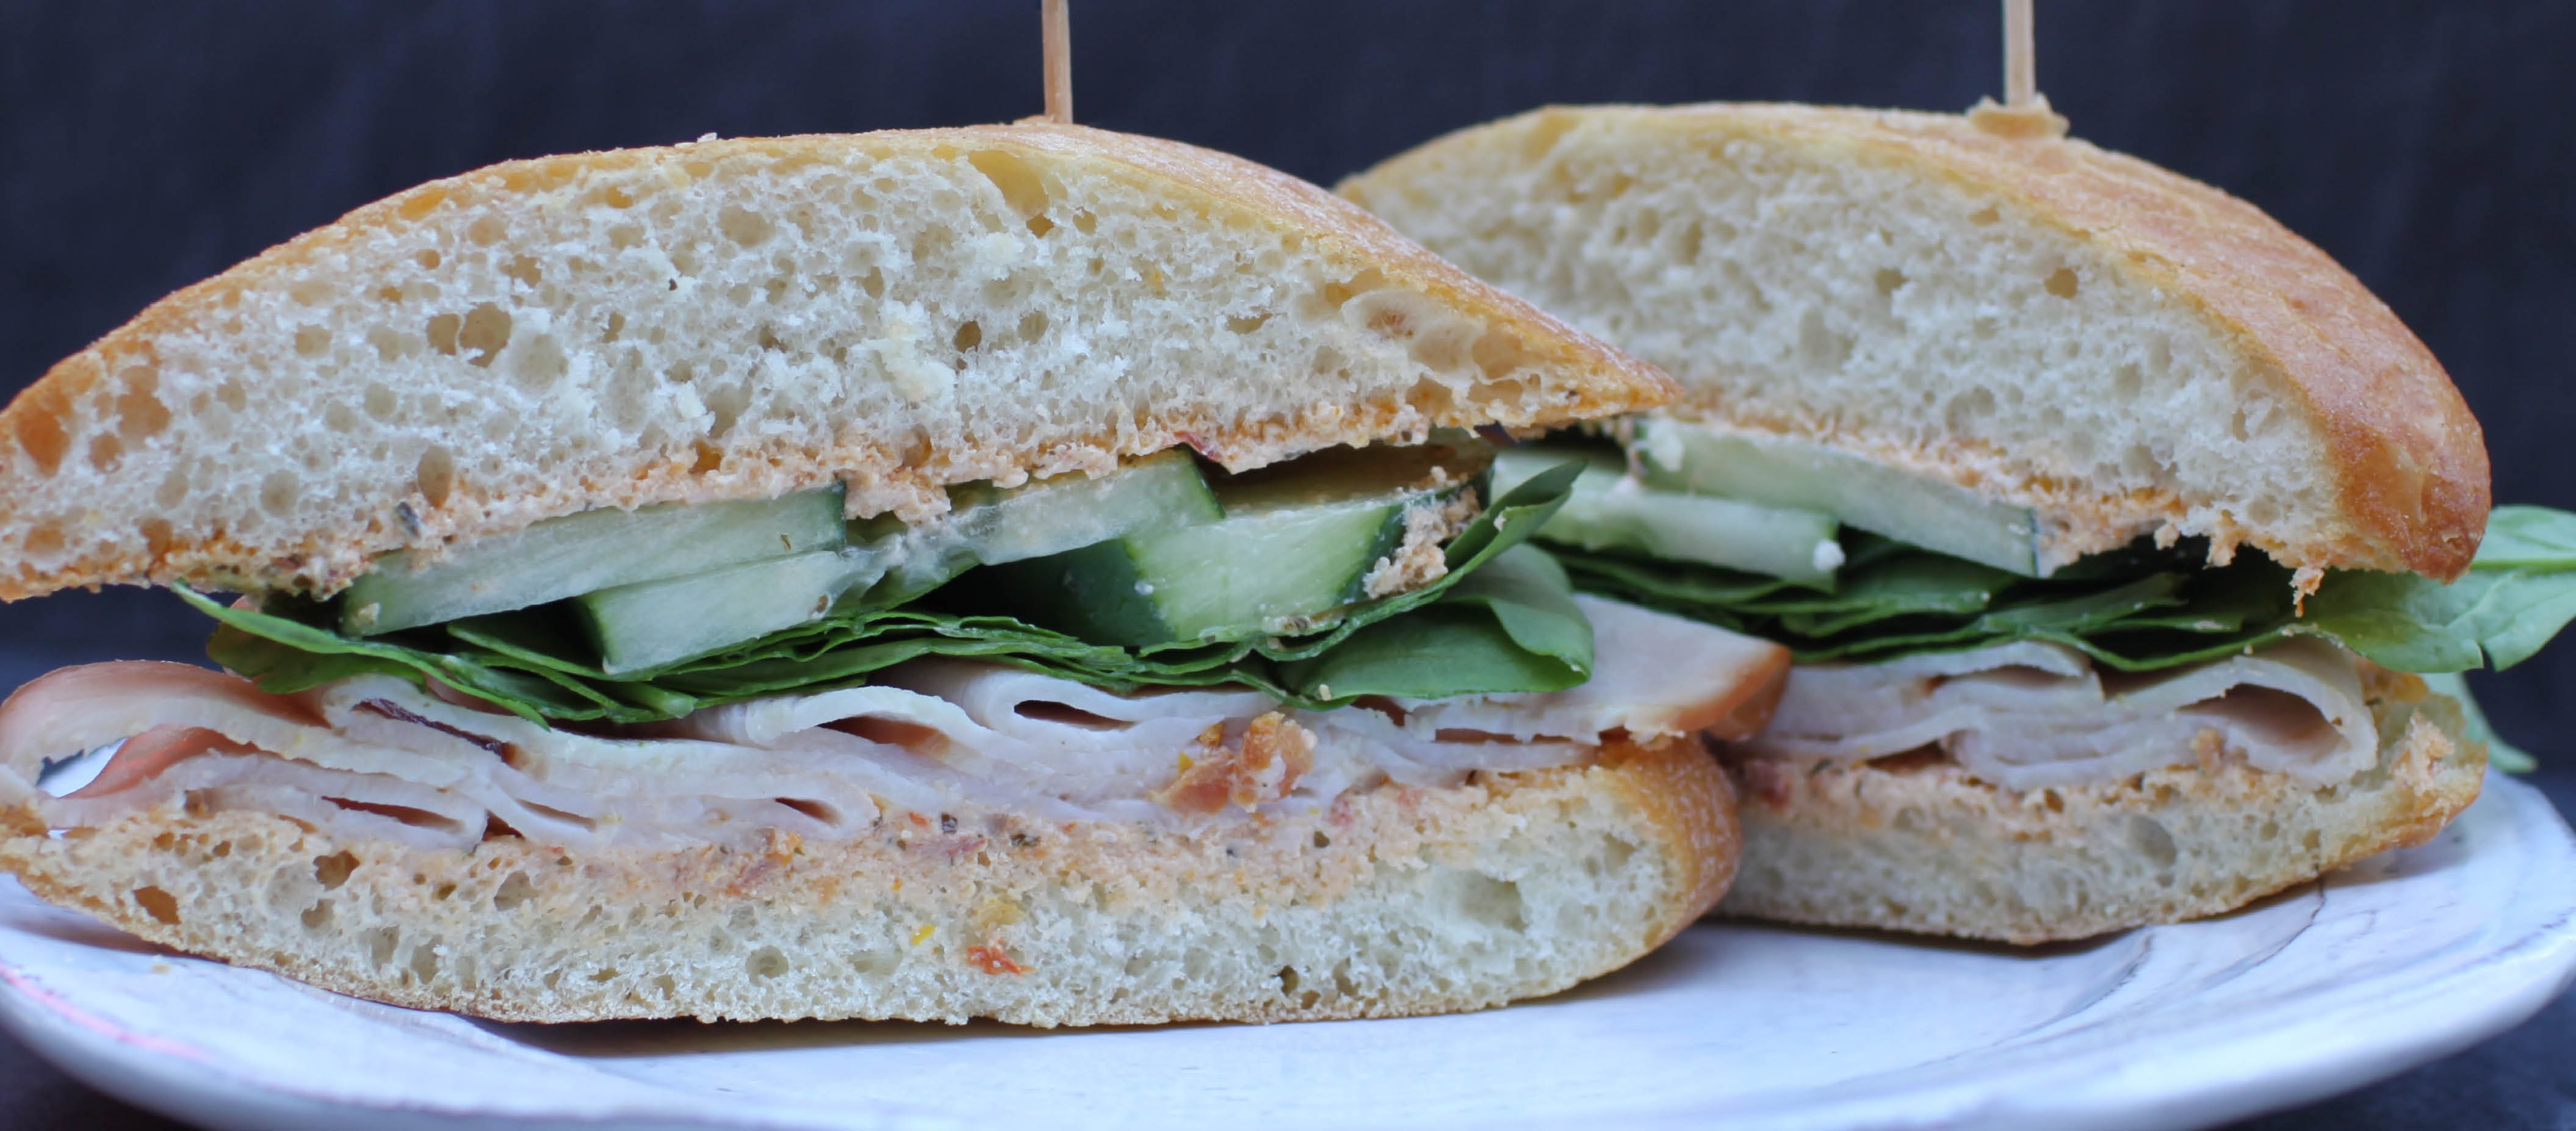 save on sandwiches with max & erma's coupons